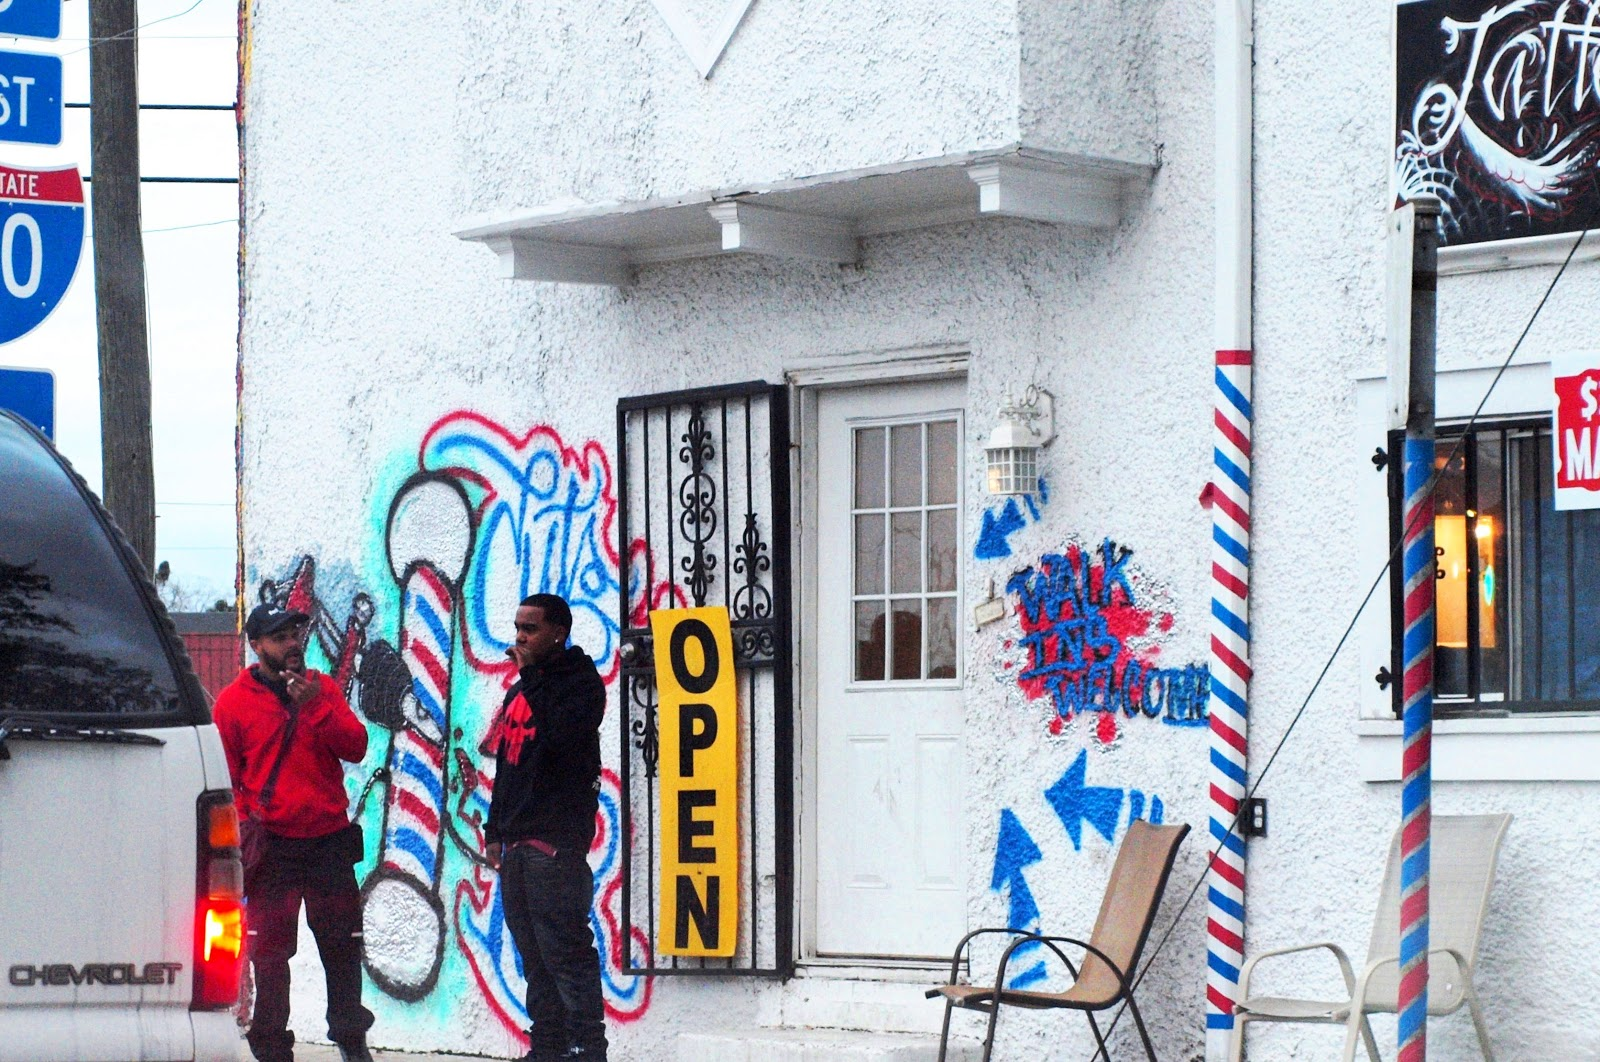 angels and people, life in New Orleans: barber shop